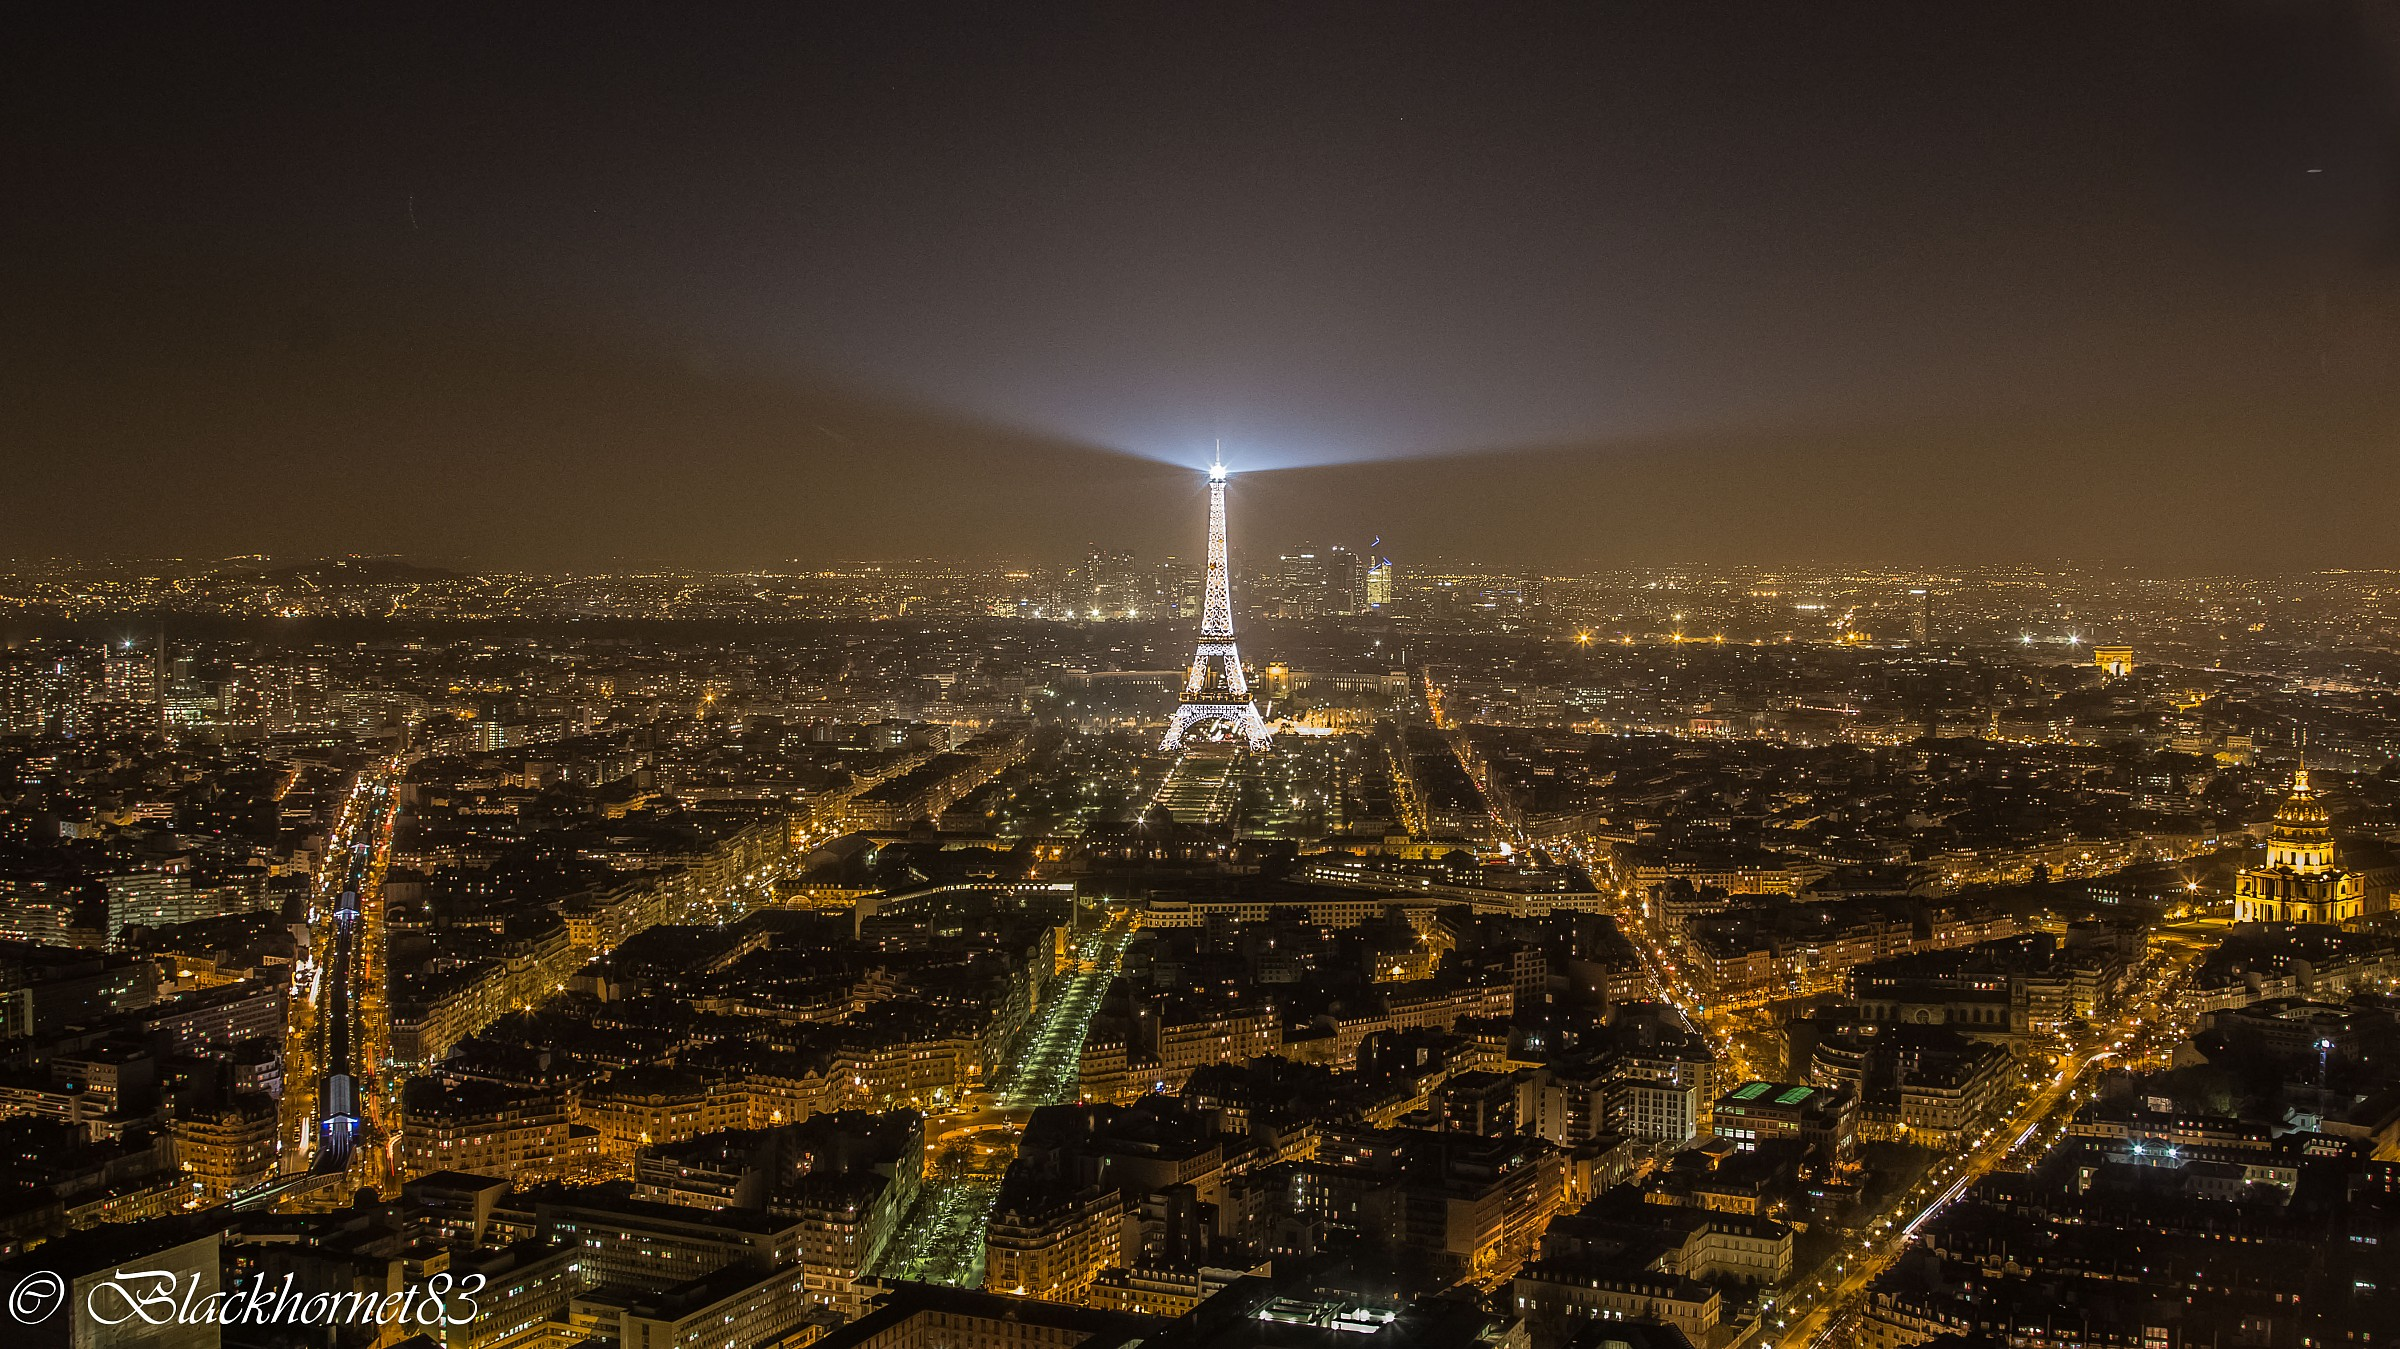 The City of Lights...